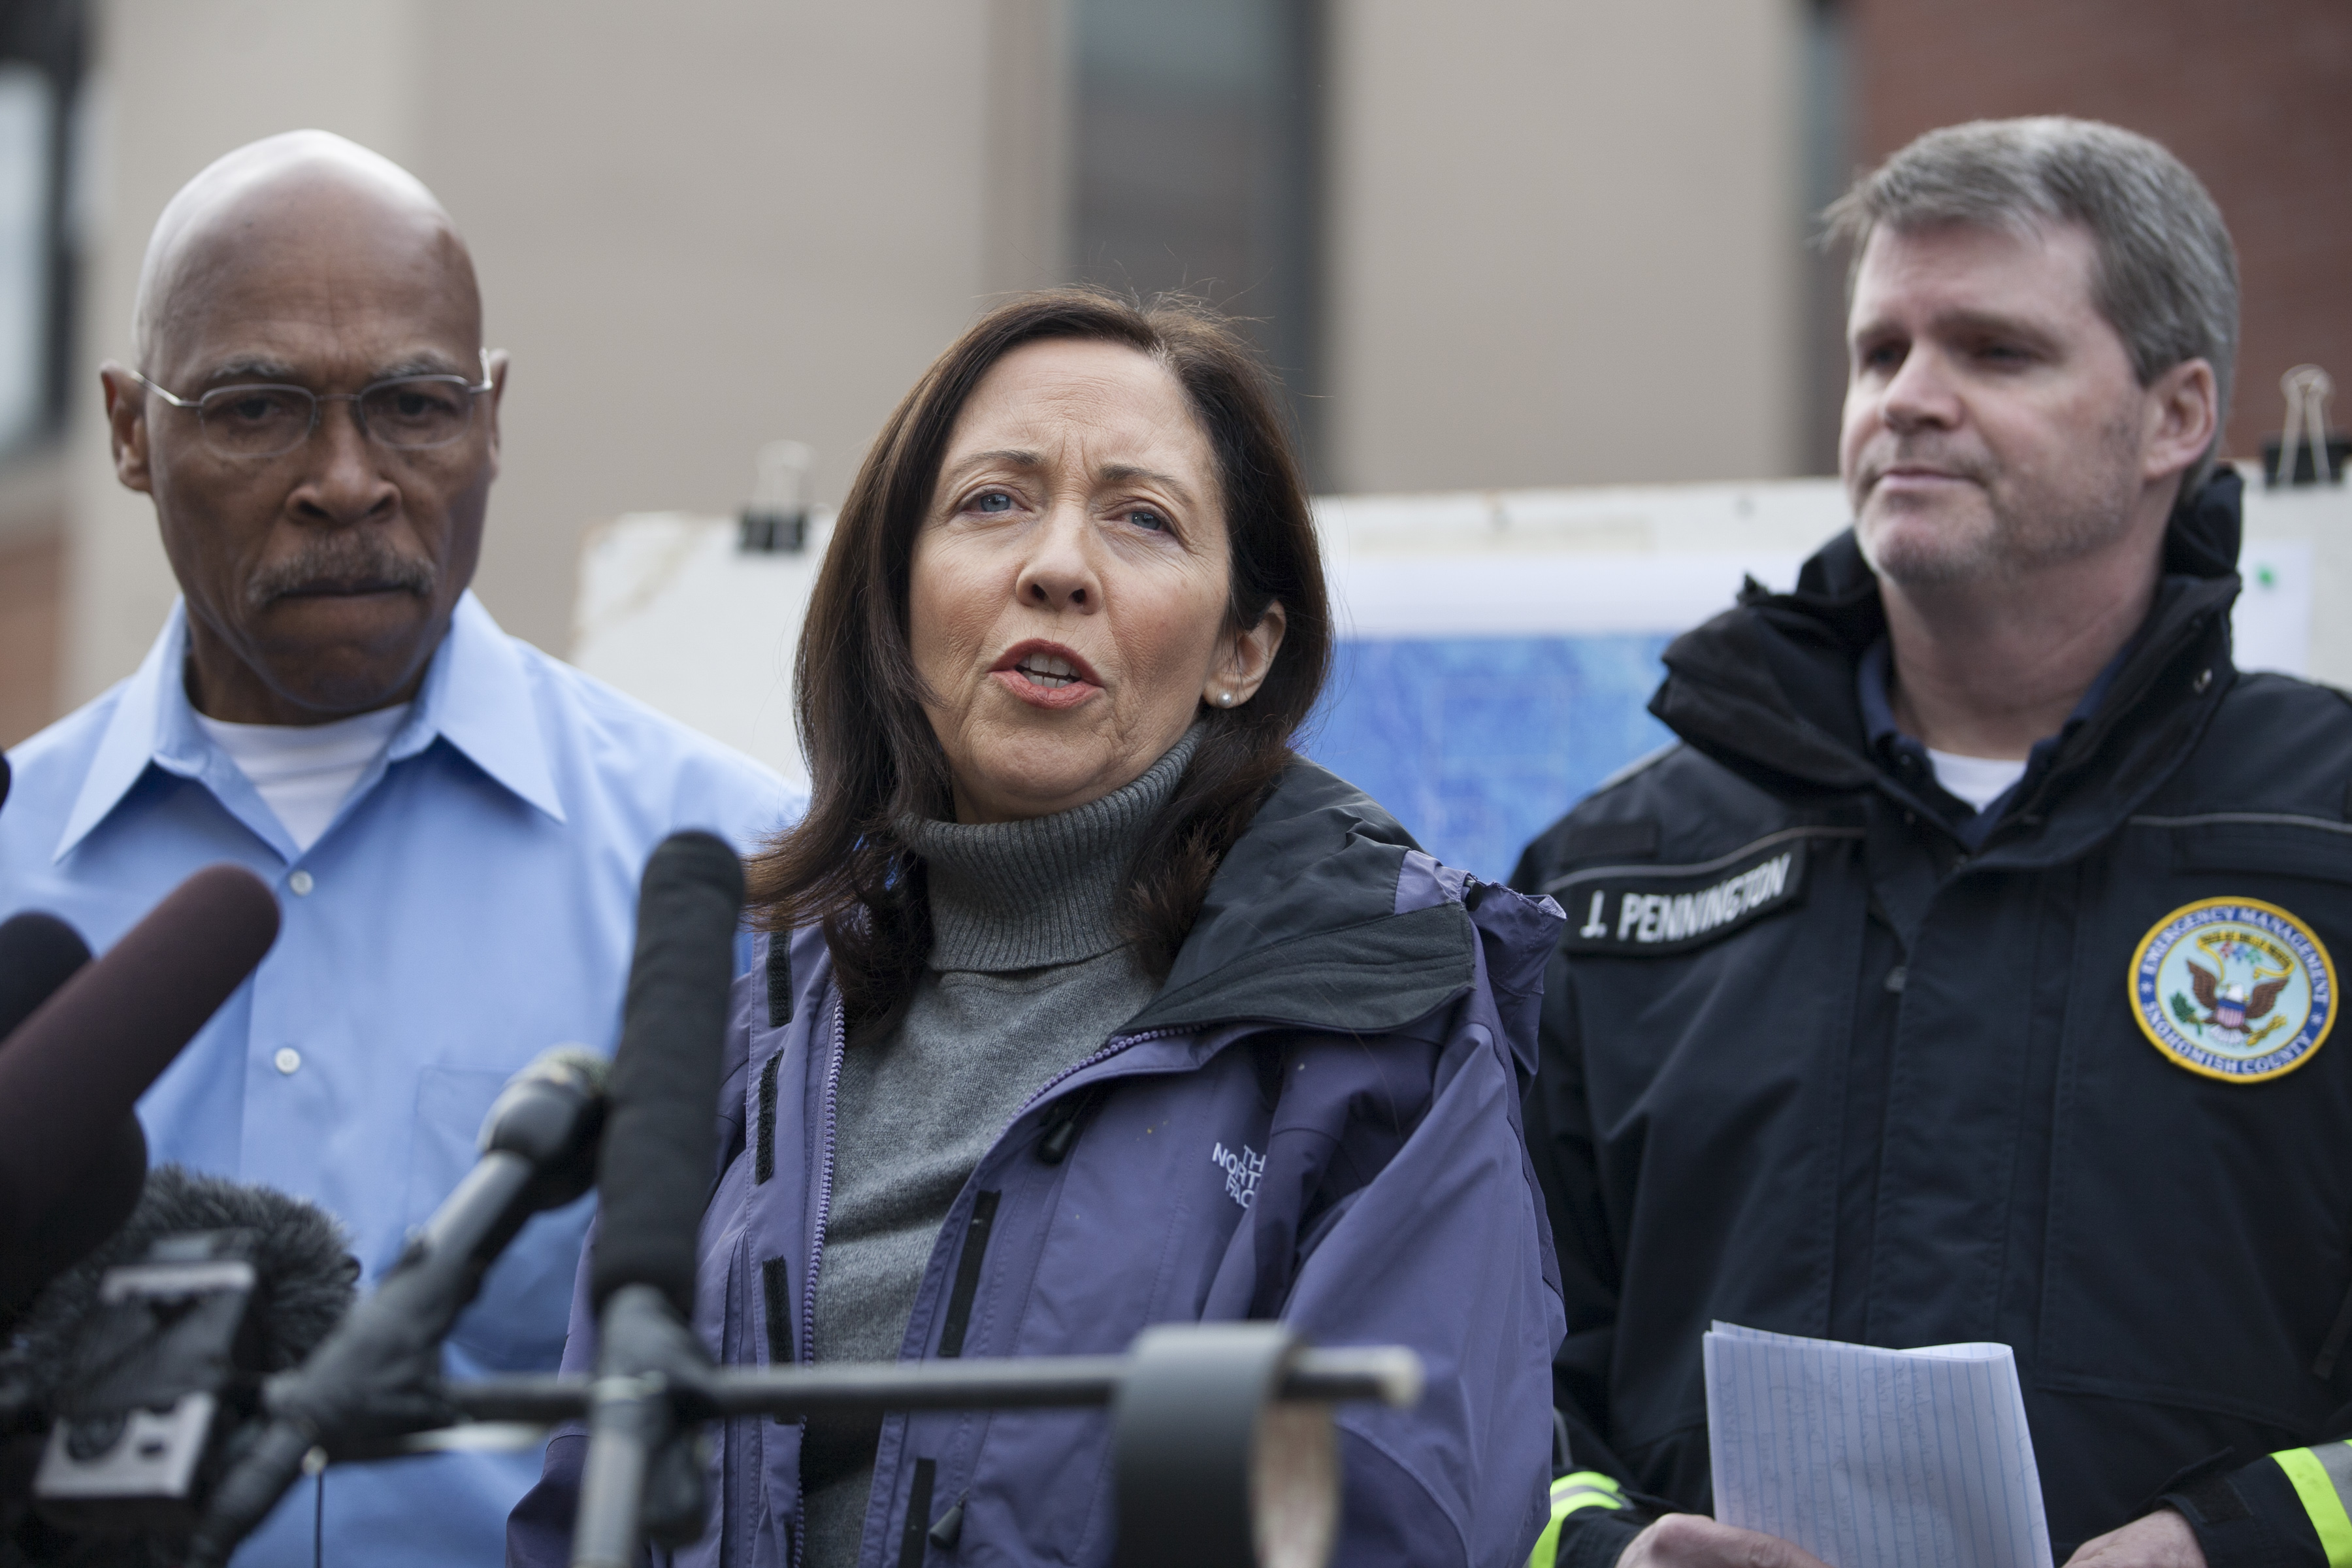 Sen. Maria Cantwell (D-Wash.) speaks to reporters about the huge landslide that roared down from a rain-saturated mountain slope in Oso, in Arlington, Wash., March 24, 2014. The number of individuals unaccounted for after Saturday's deadly mudslide has risen from 18 to 108. (Matthew Ryan Williams/The New York Times)